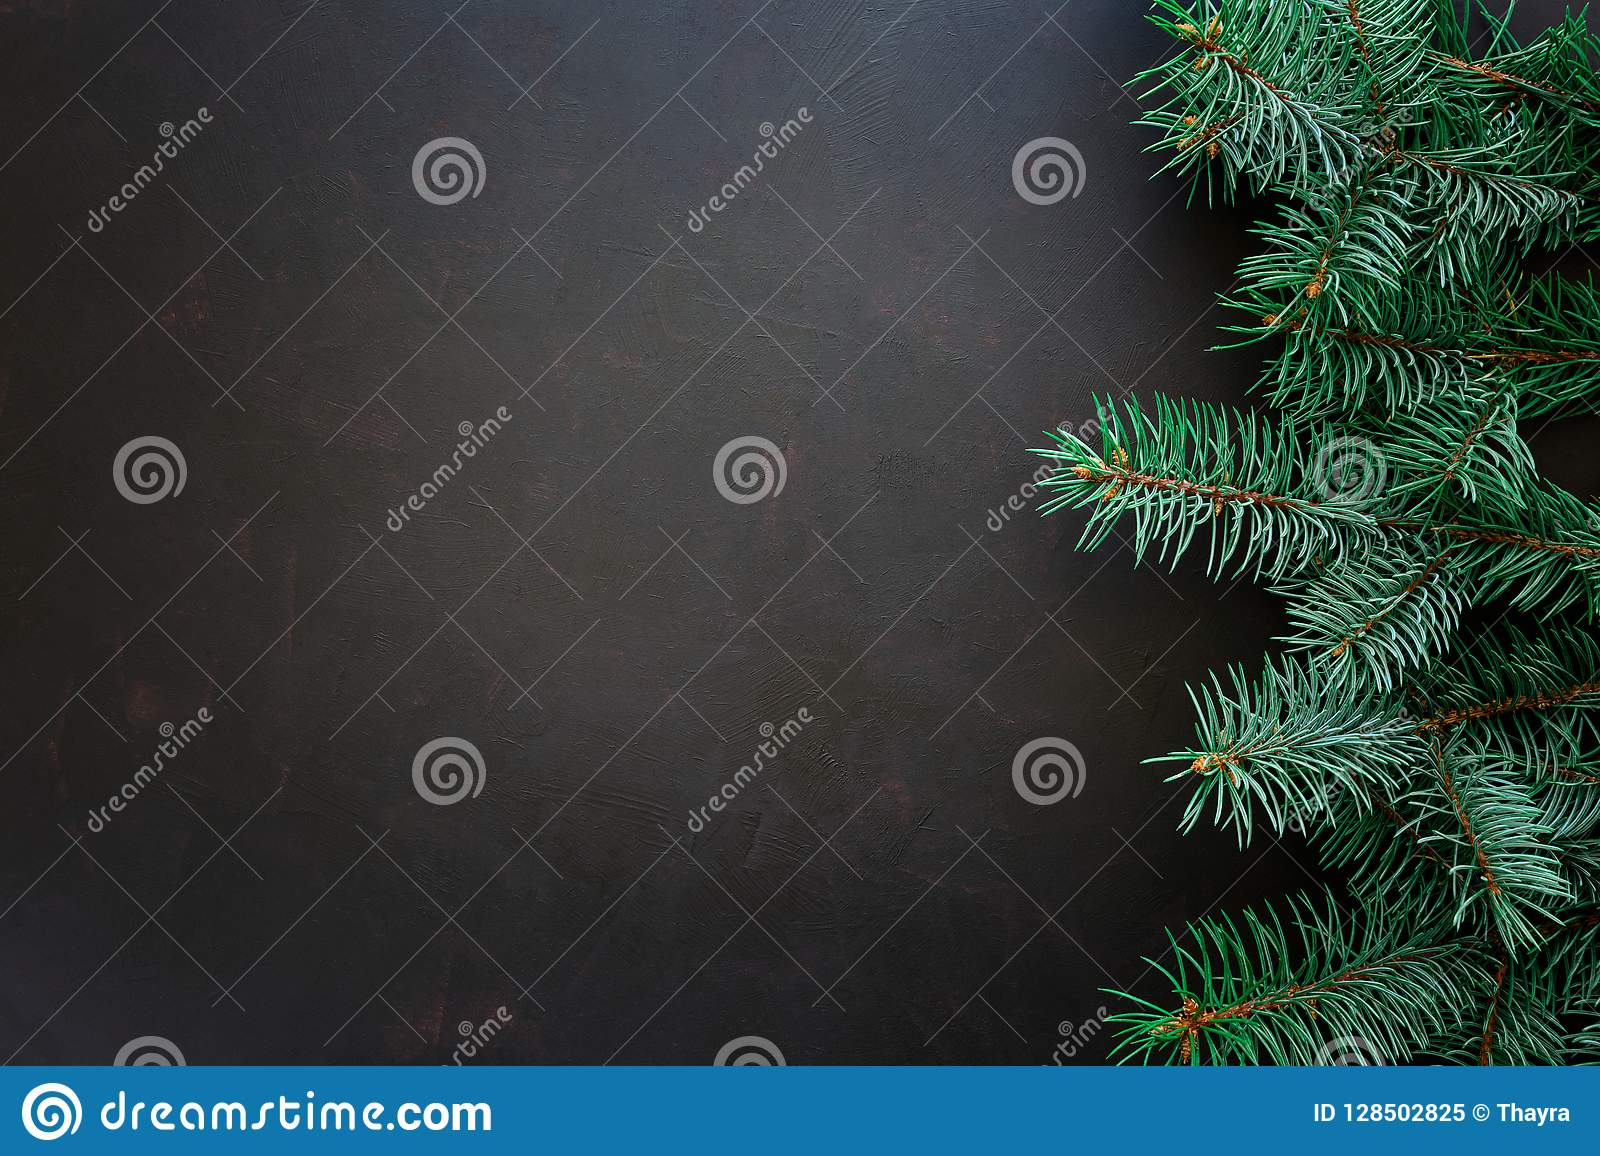 Christmas Border. Fir tree branches on dark wooden background